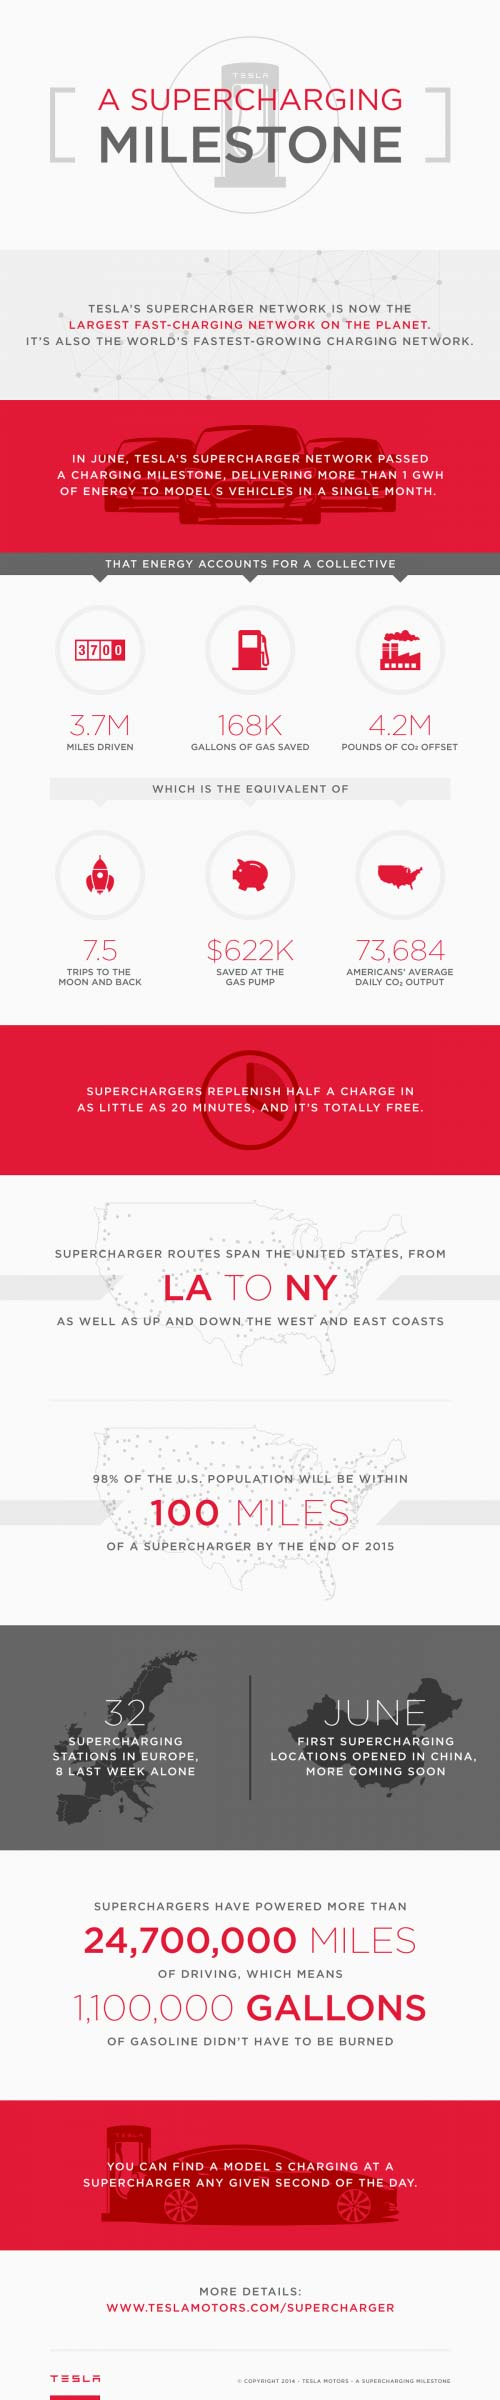 Tesla-Supercharger-Infographic